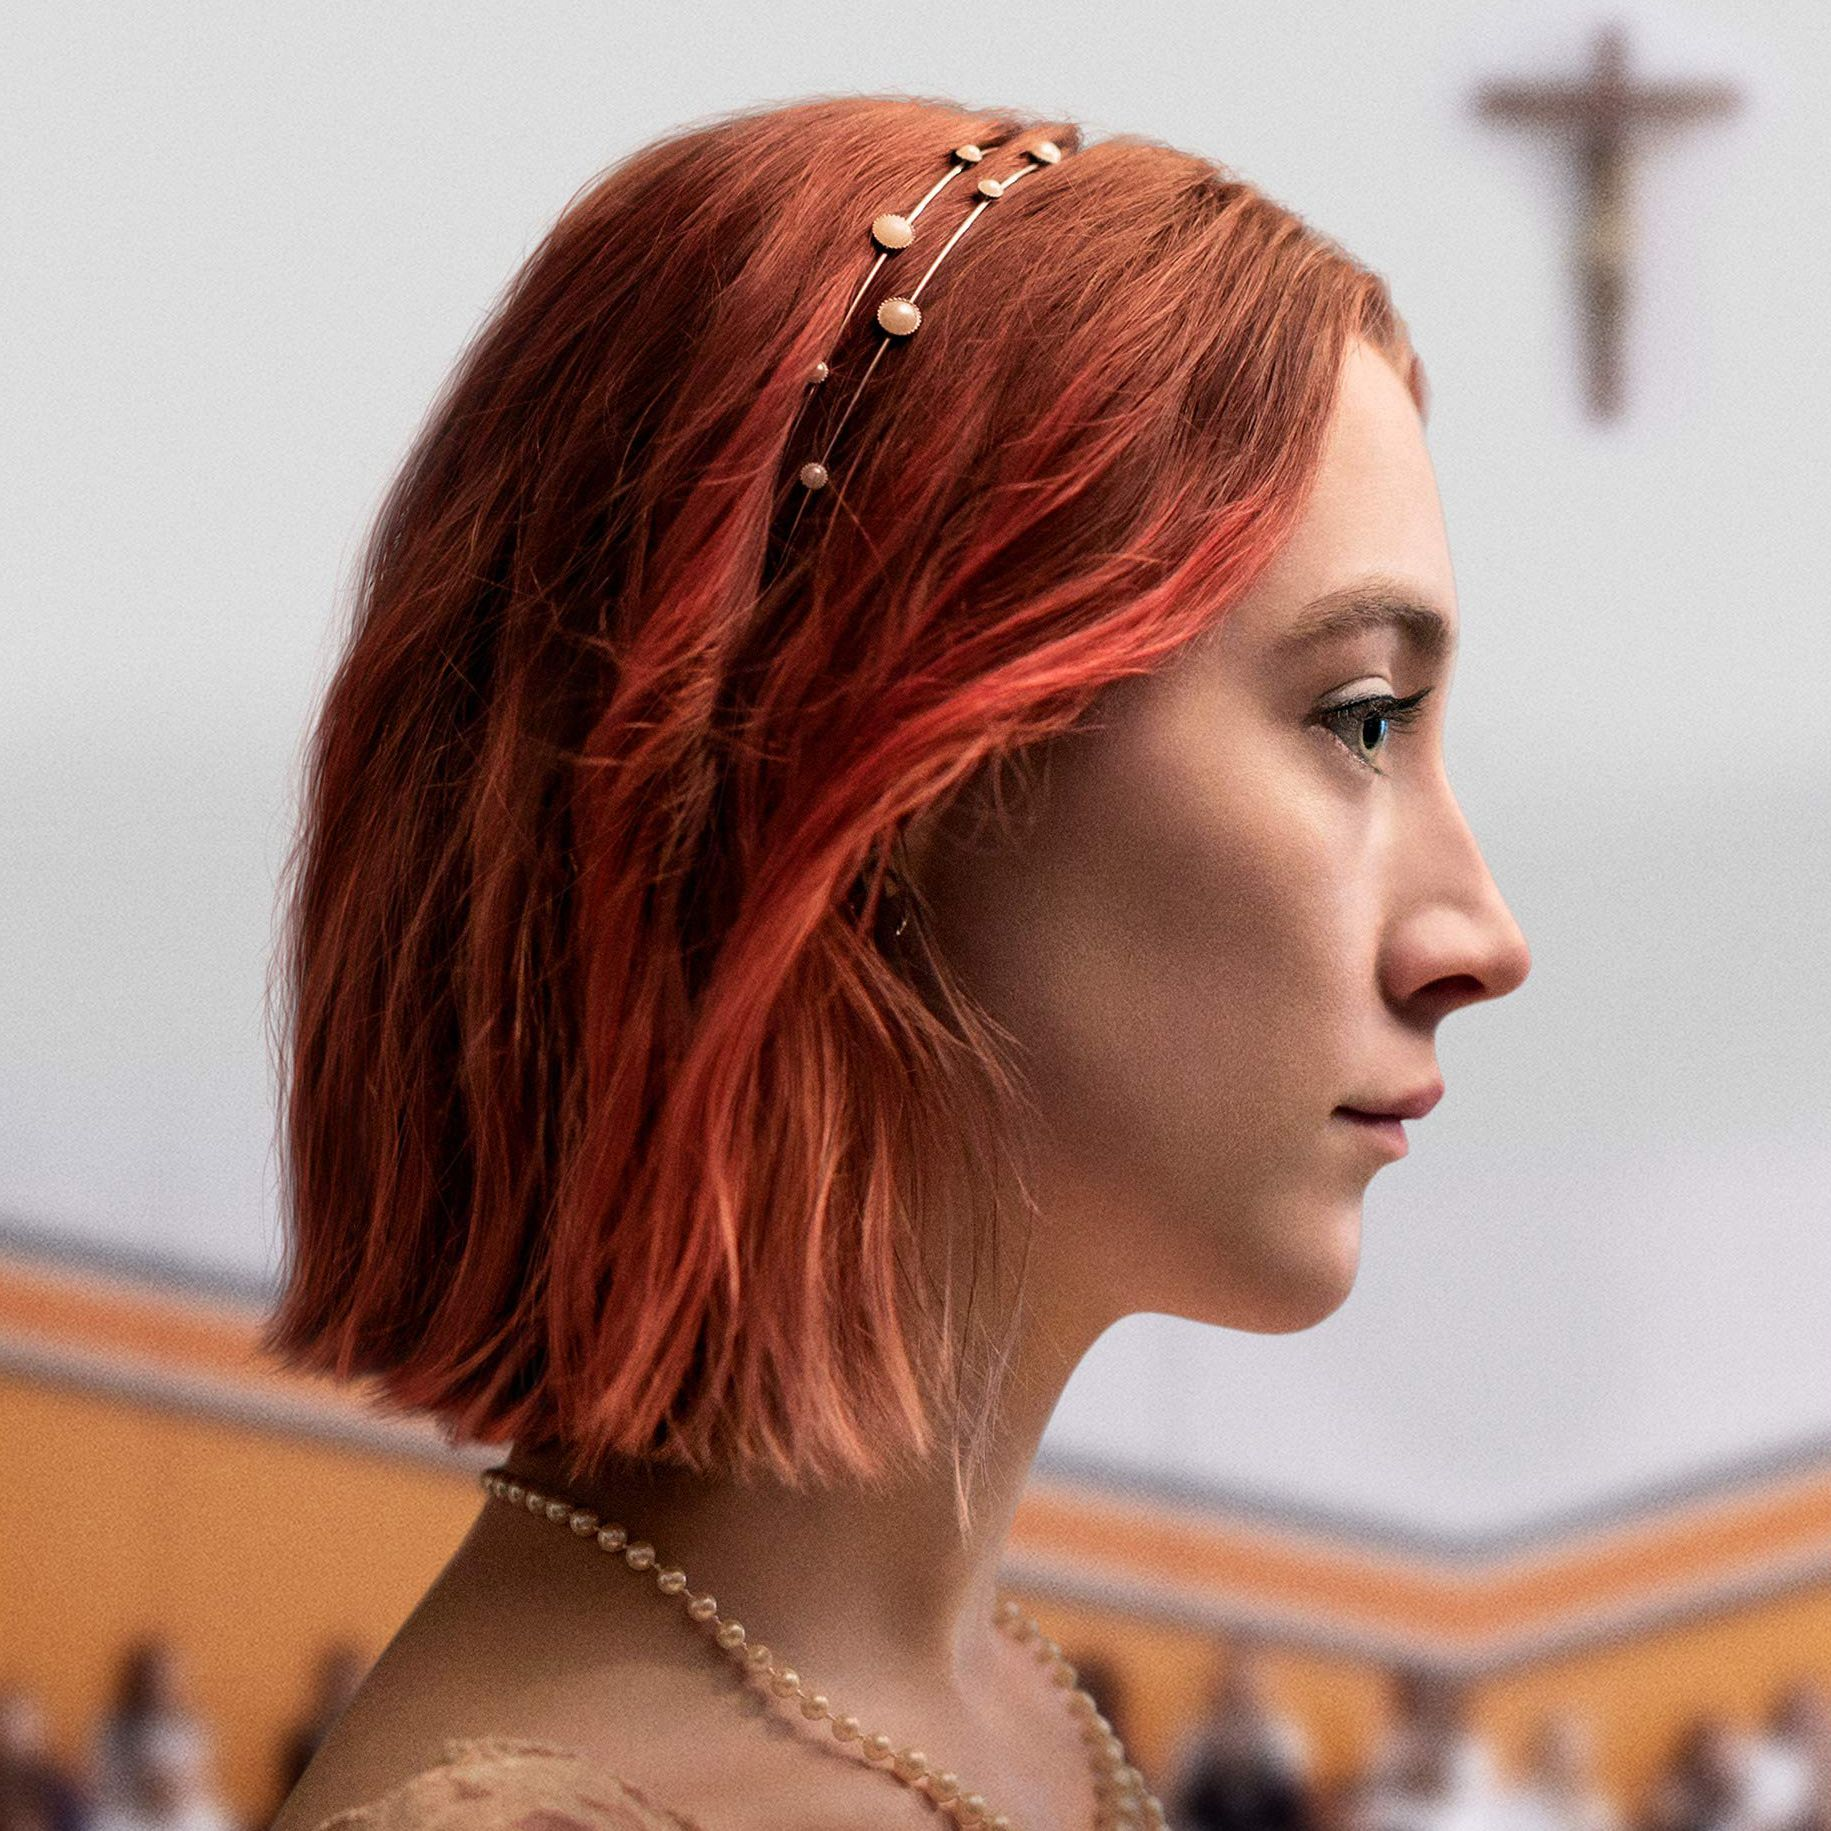 Best Mother's Day Movies -Lady Bird